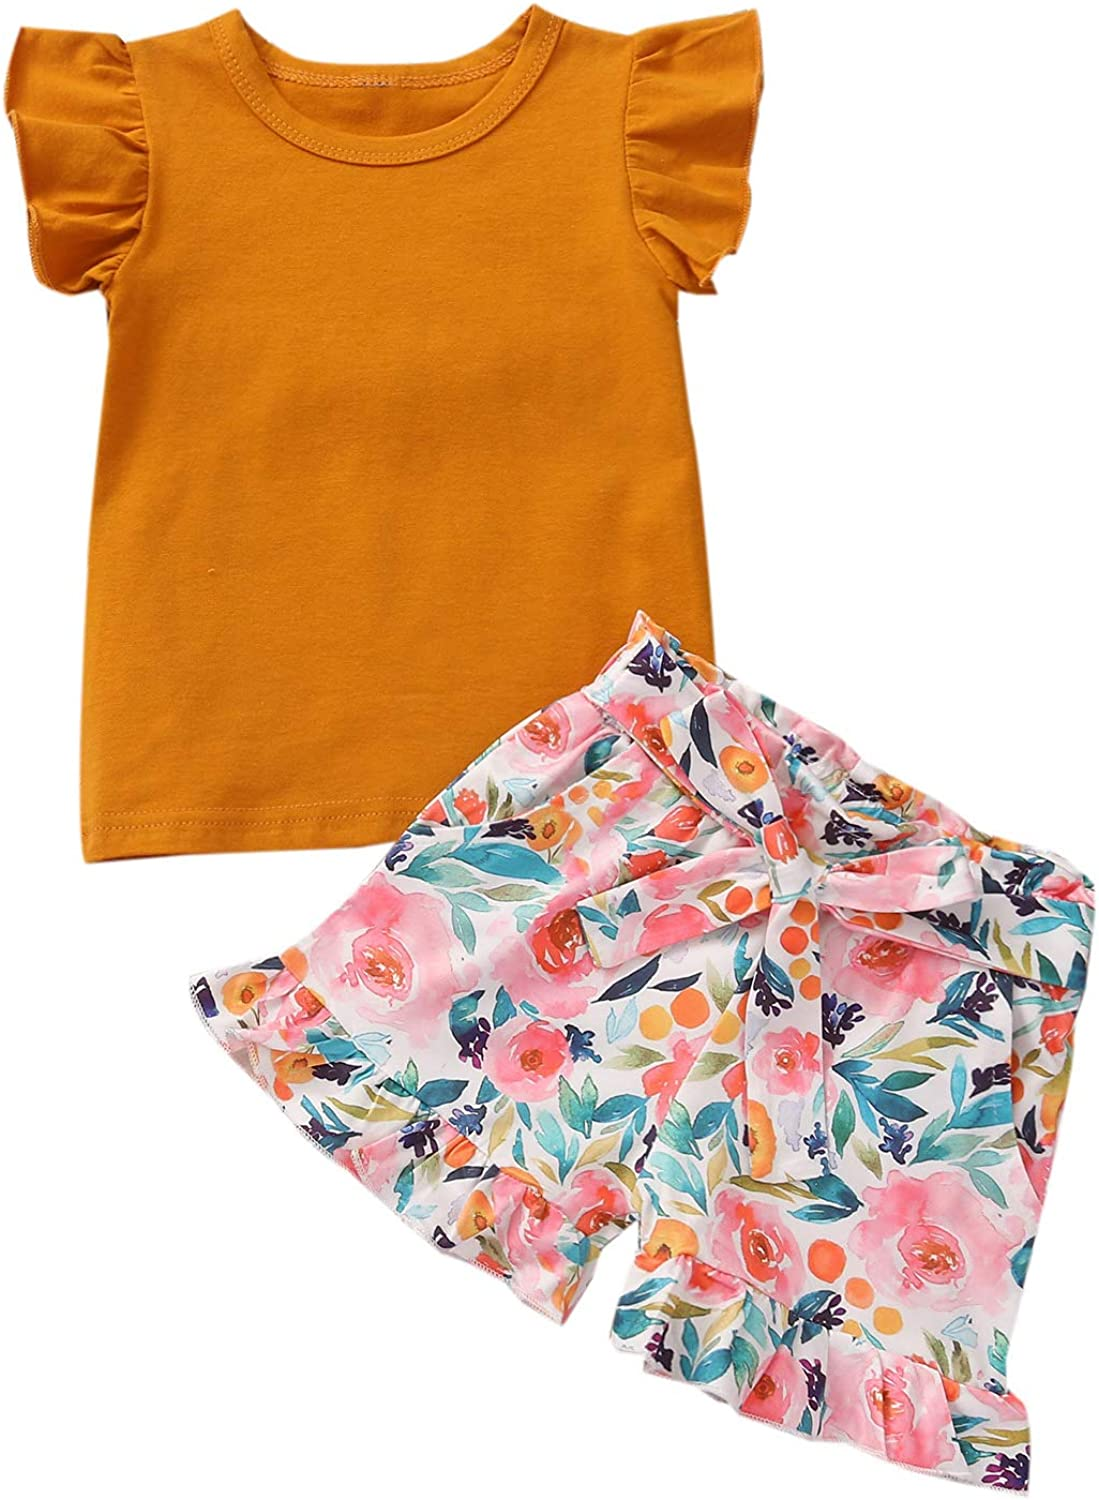 Toddler Baby Girl Outfits Solid Ruffle Sleeve Shirt top Floral Short Pants Girls Summer Clothes